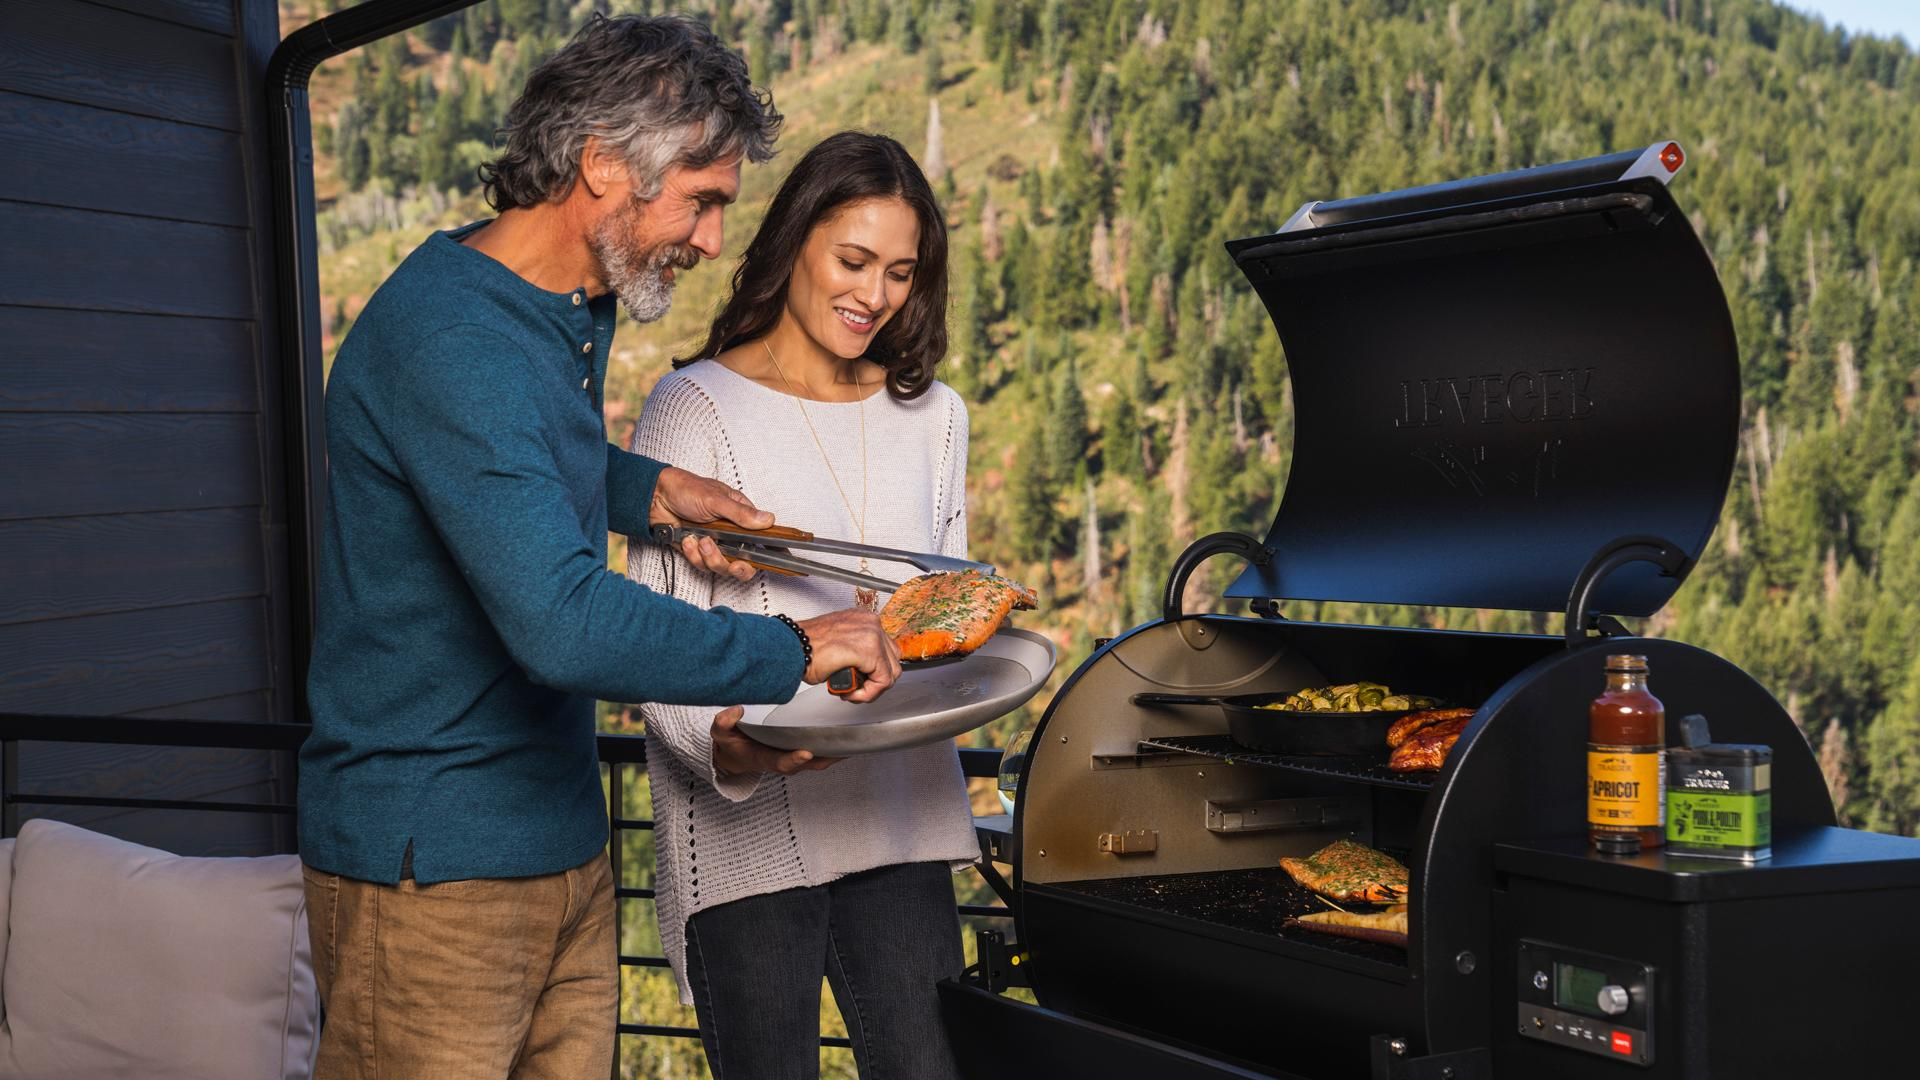 Win a Traeger Pro 575 Grill | Cooking a romantic dinner on a Traeger